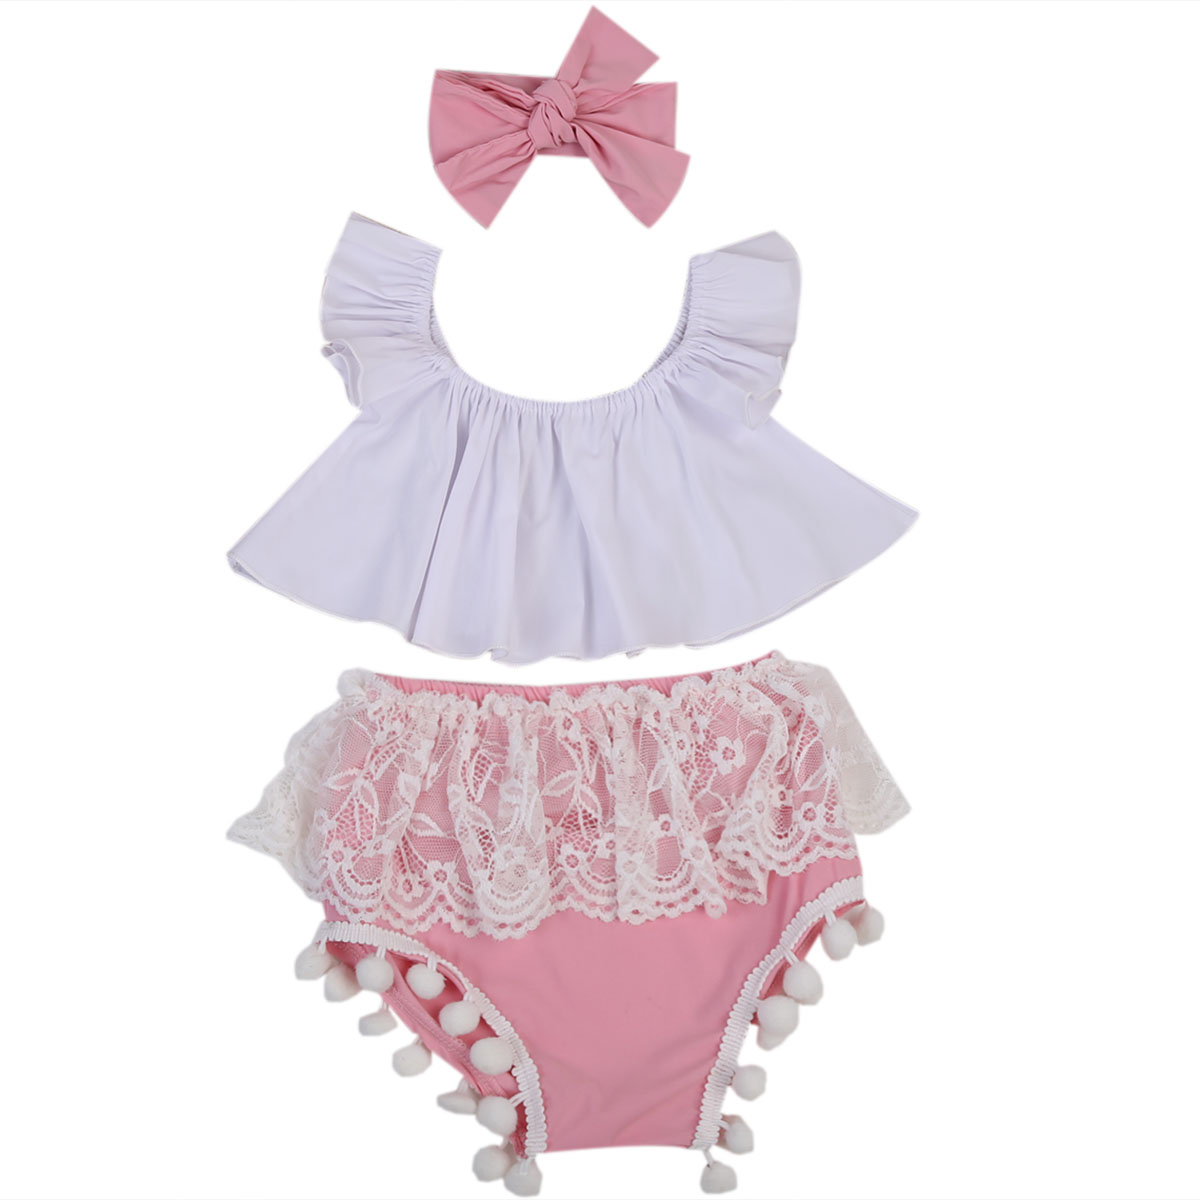 Newborn Baby Girl Clothes Ruffle Vest Top+Lace Tassel Shorts+Headband 3Pcs Sets Summer Toddler Girls Cute Cotton Suits Outfits 3pcs set cute newborn baby girl clothes 2017 worth the wait baby bodysuit romper ruffles tutu skirted shorts headband outfits